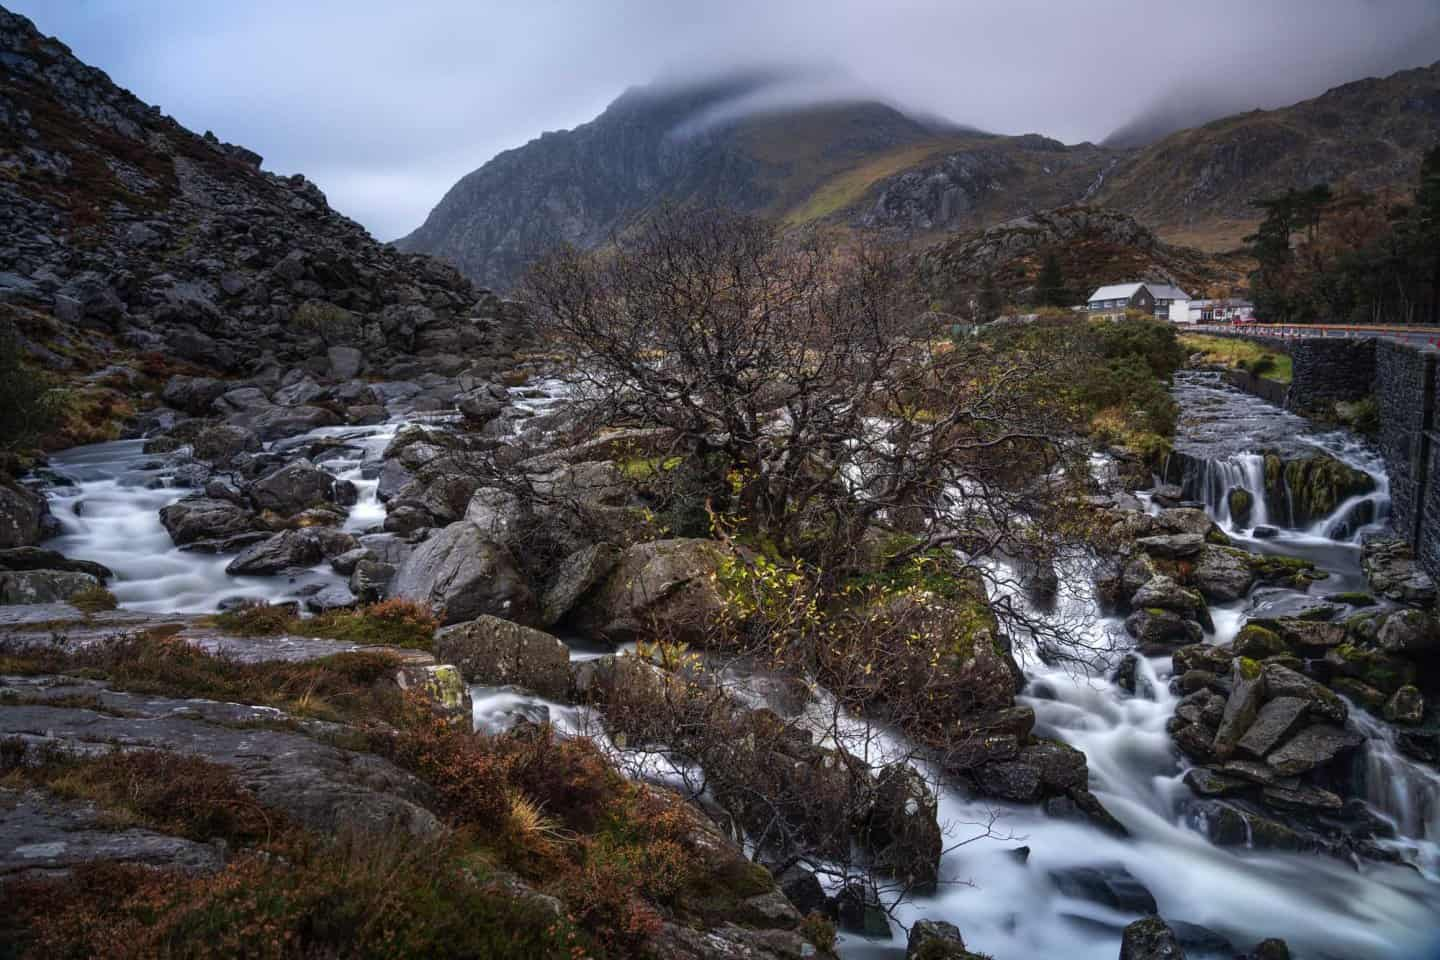 Water cascades from Llyn Ogwen as Tryfan broods moodily in the background.